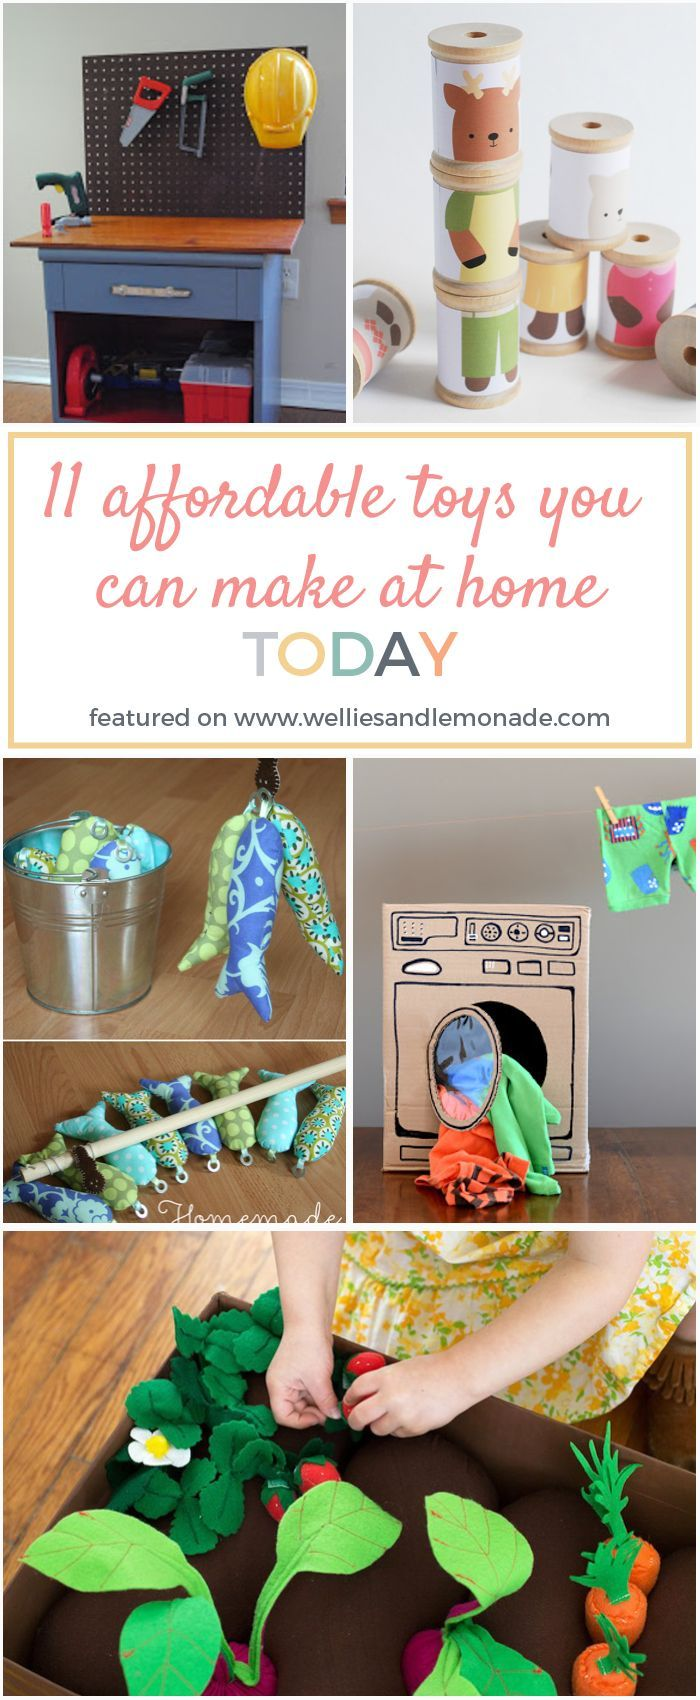 11 Affordable Toys You Can Make At Home Today How To